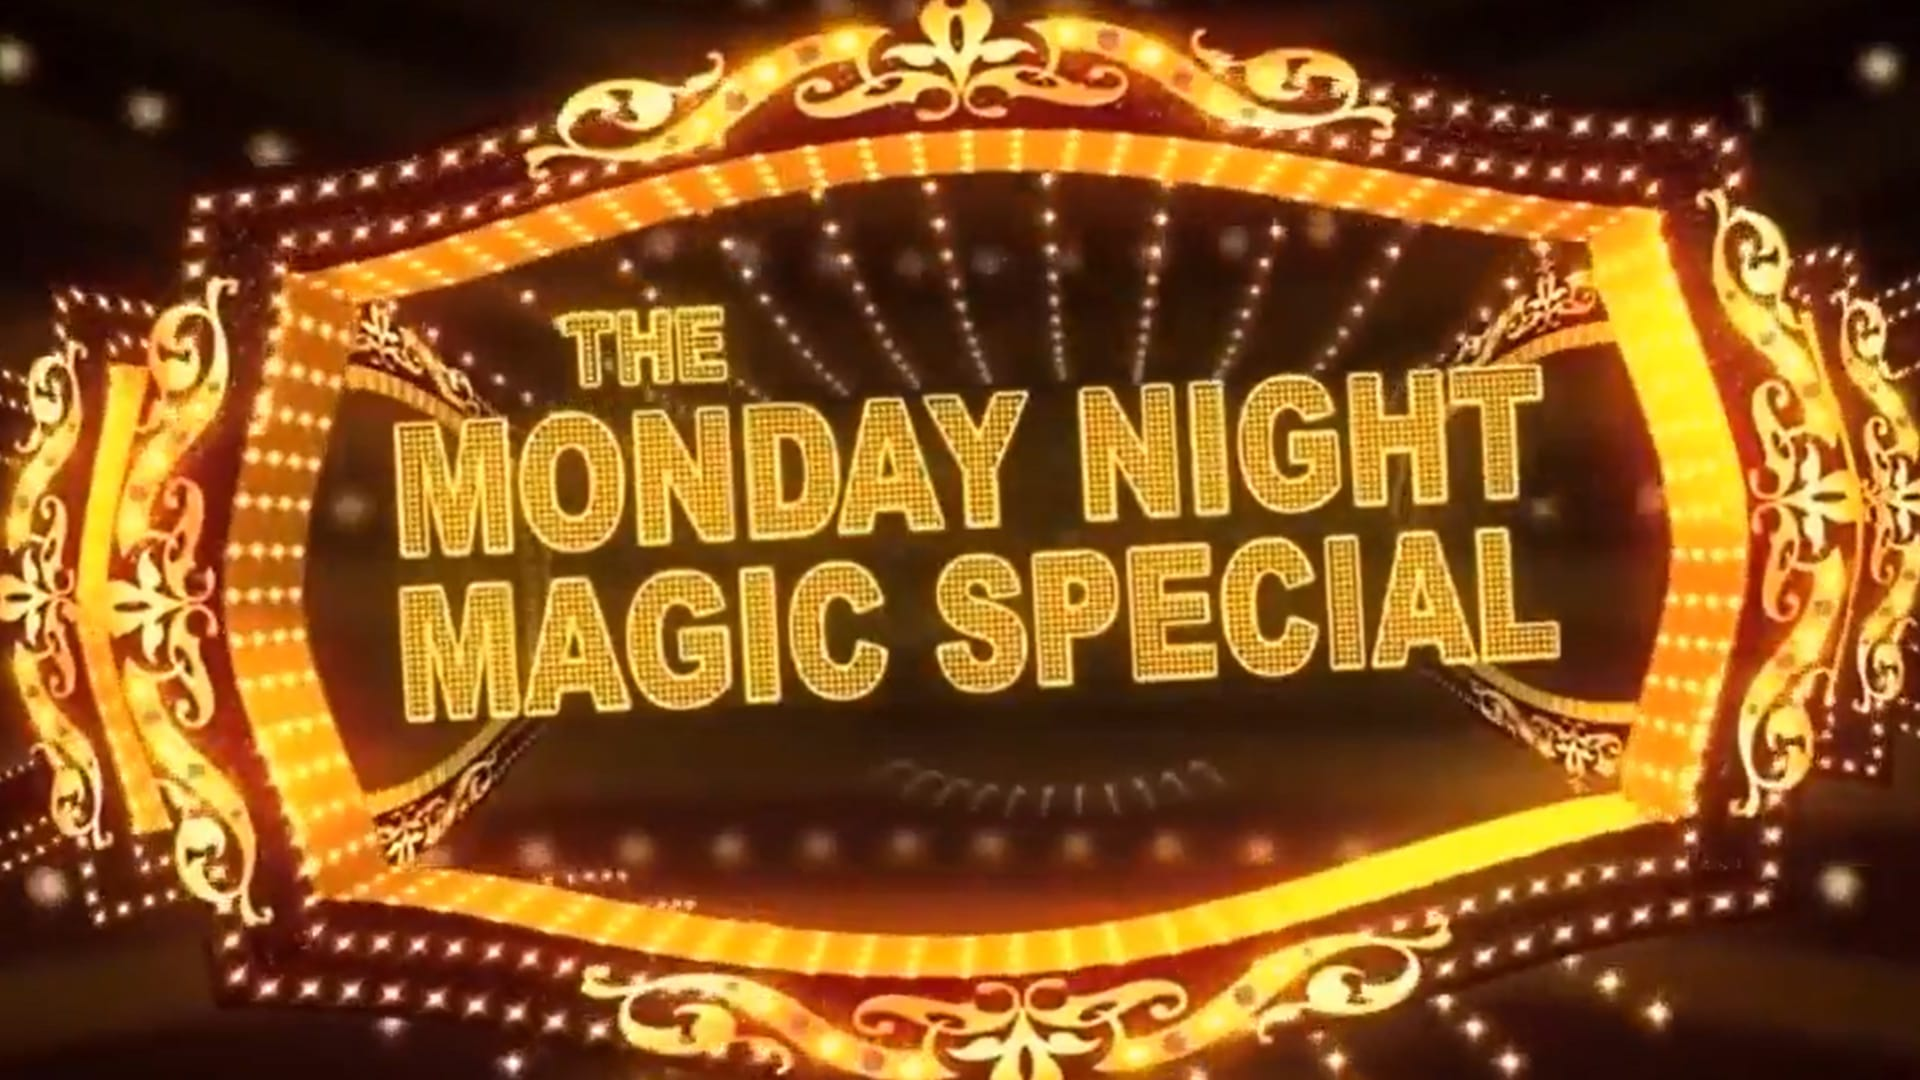 The Monday Night Magic Special